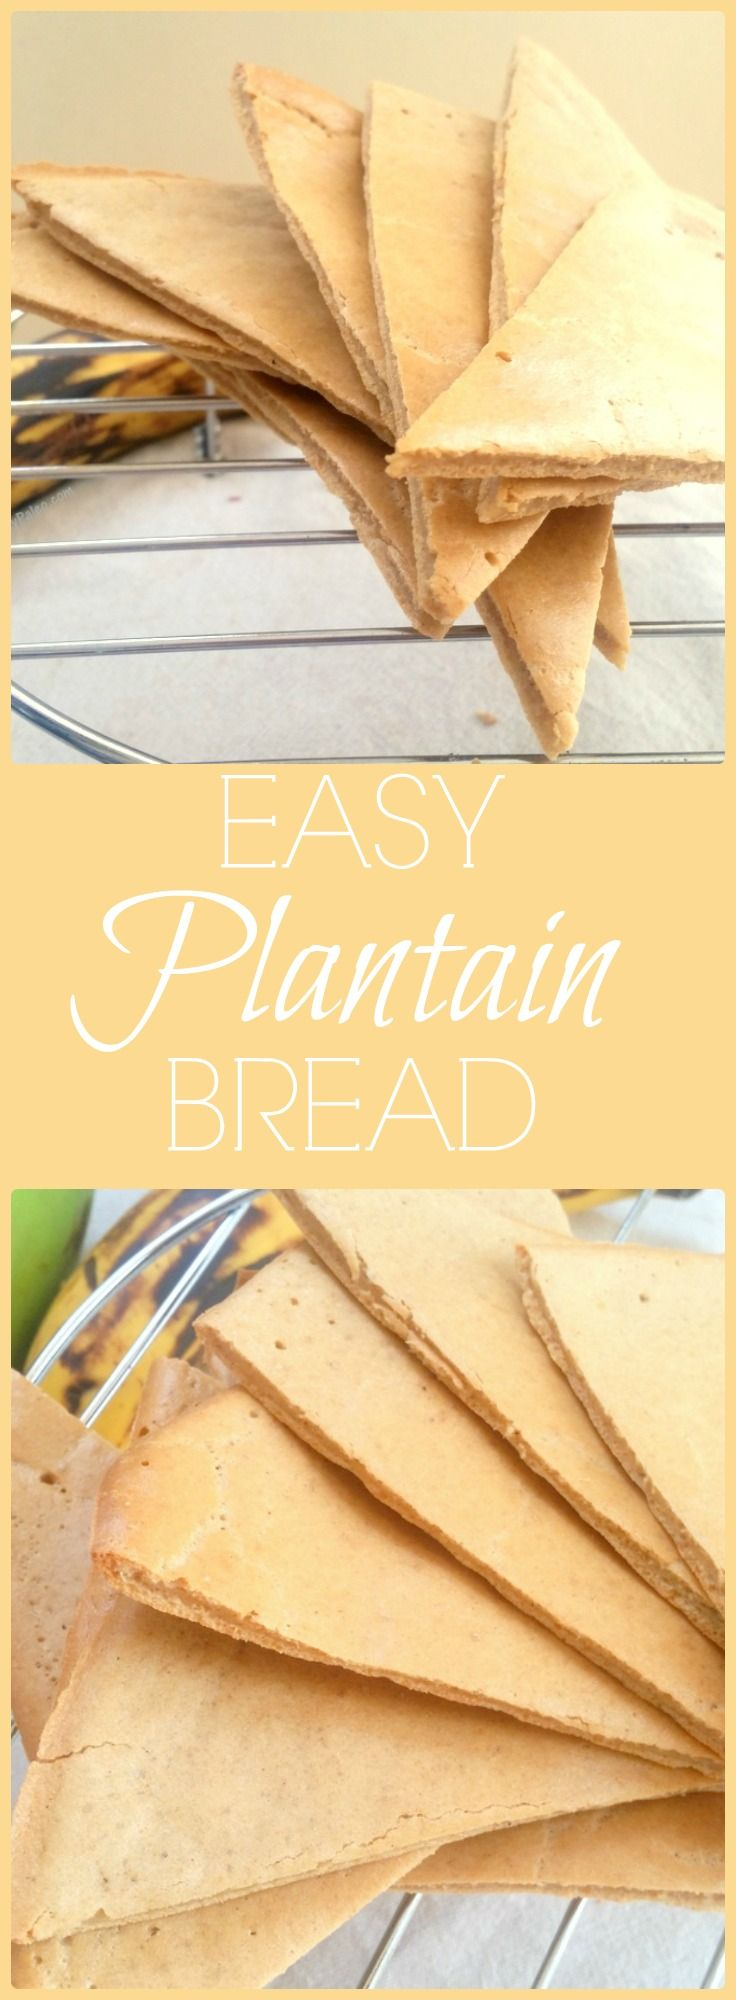 Easy Plantain Bread - only THREE ingredients! via @WhittyPaleo